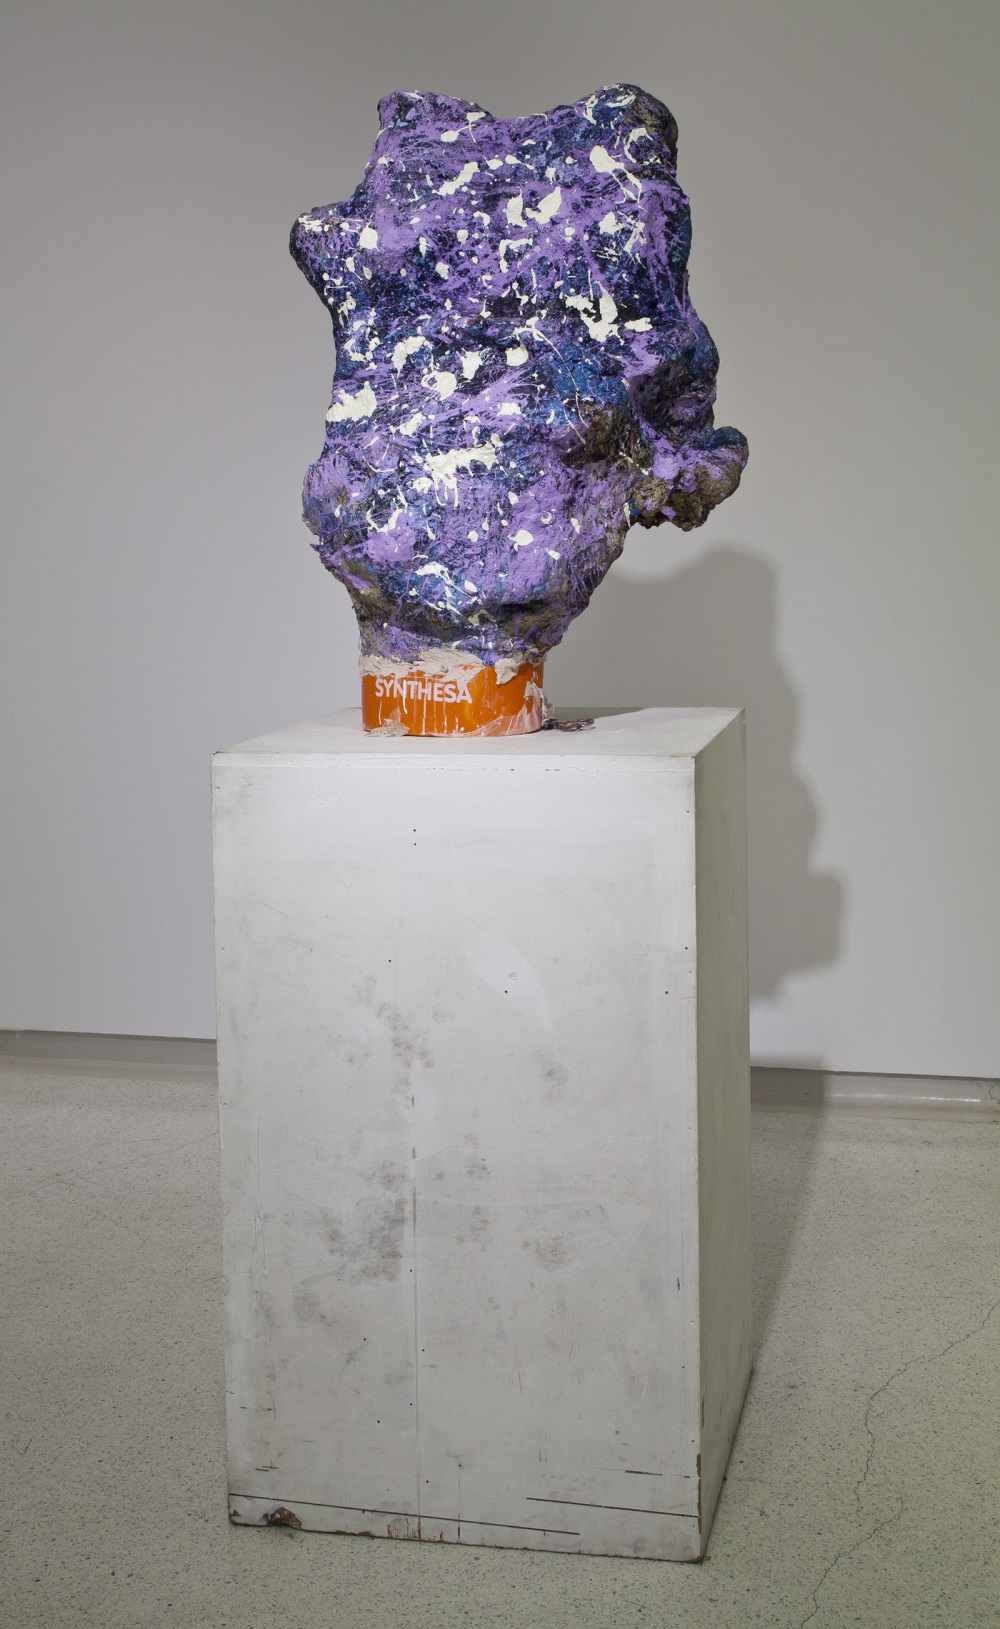 Franz West, Synthesa, 1999. Collection of the Carnegie Museum of Art, Pittsburgh.